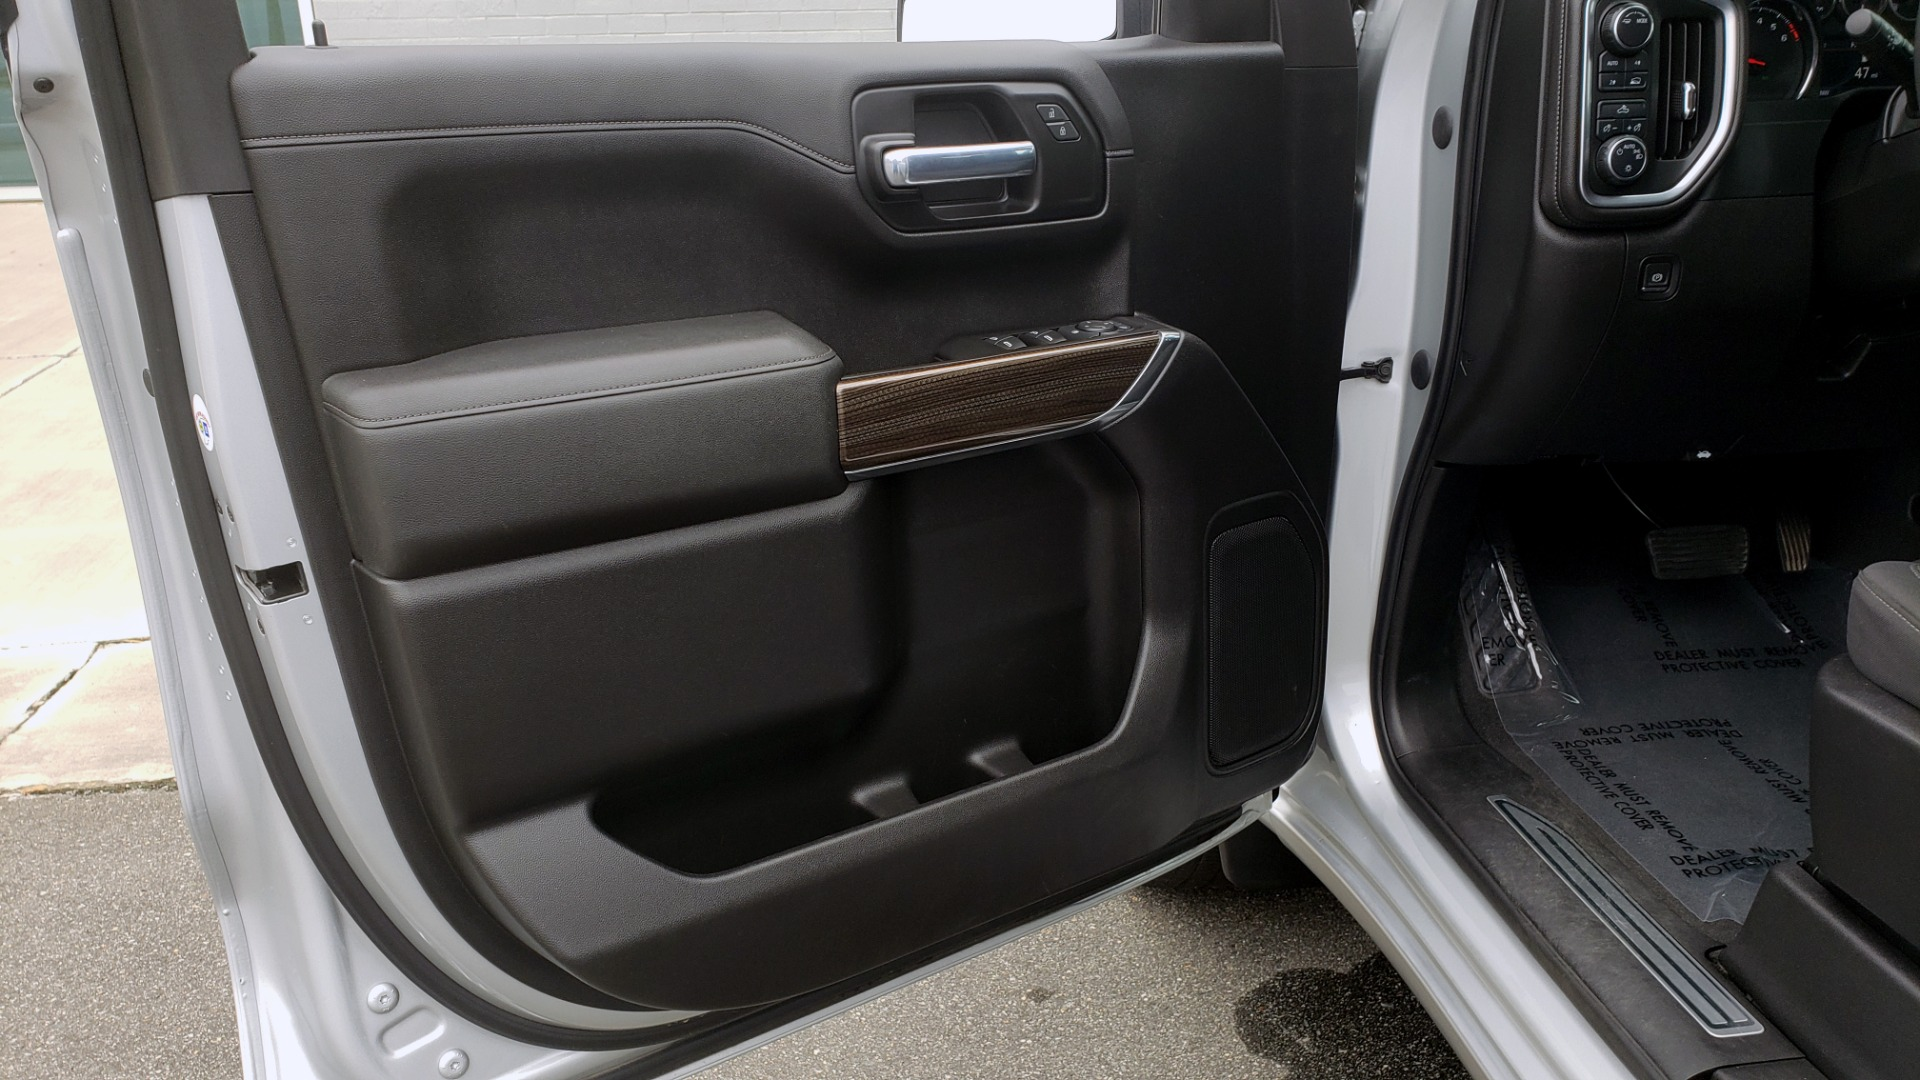 Used 2020 Chevrolet SILVERADO 1500 LT 4WD DOUBLECAB 147 WB / 5.3L V8 / BEDLINER / REARVIEW for sale $41,995 at Formula Imports in Charlotte NC 28227 32